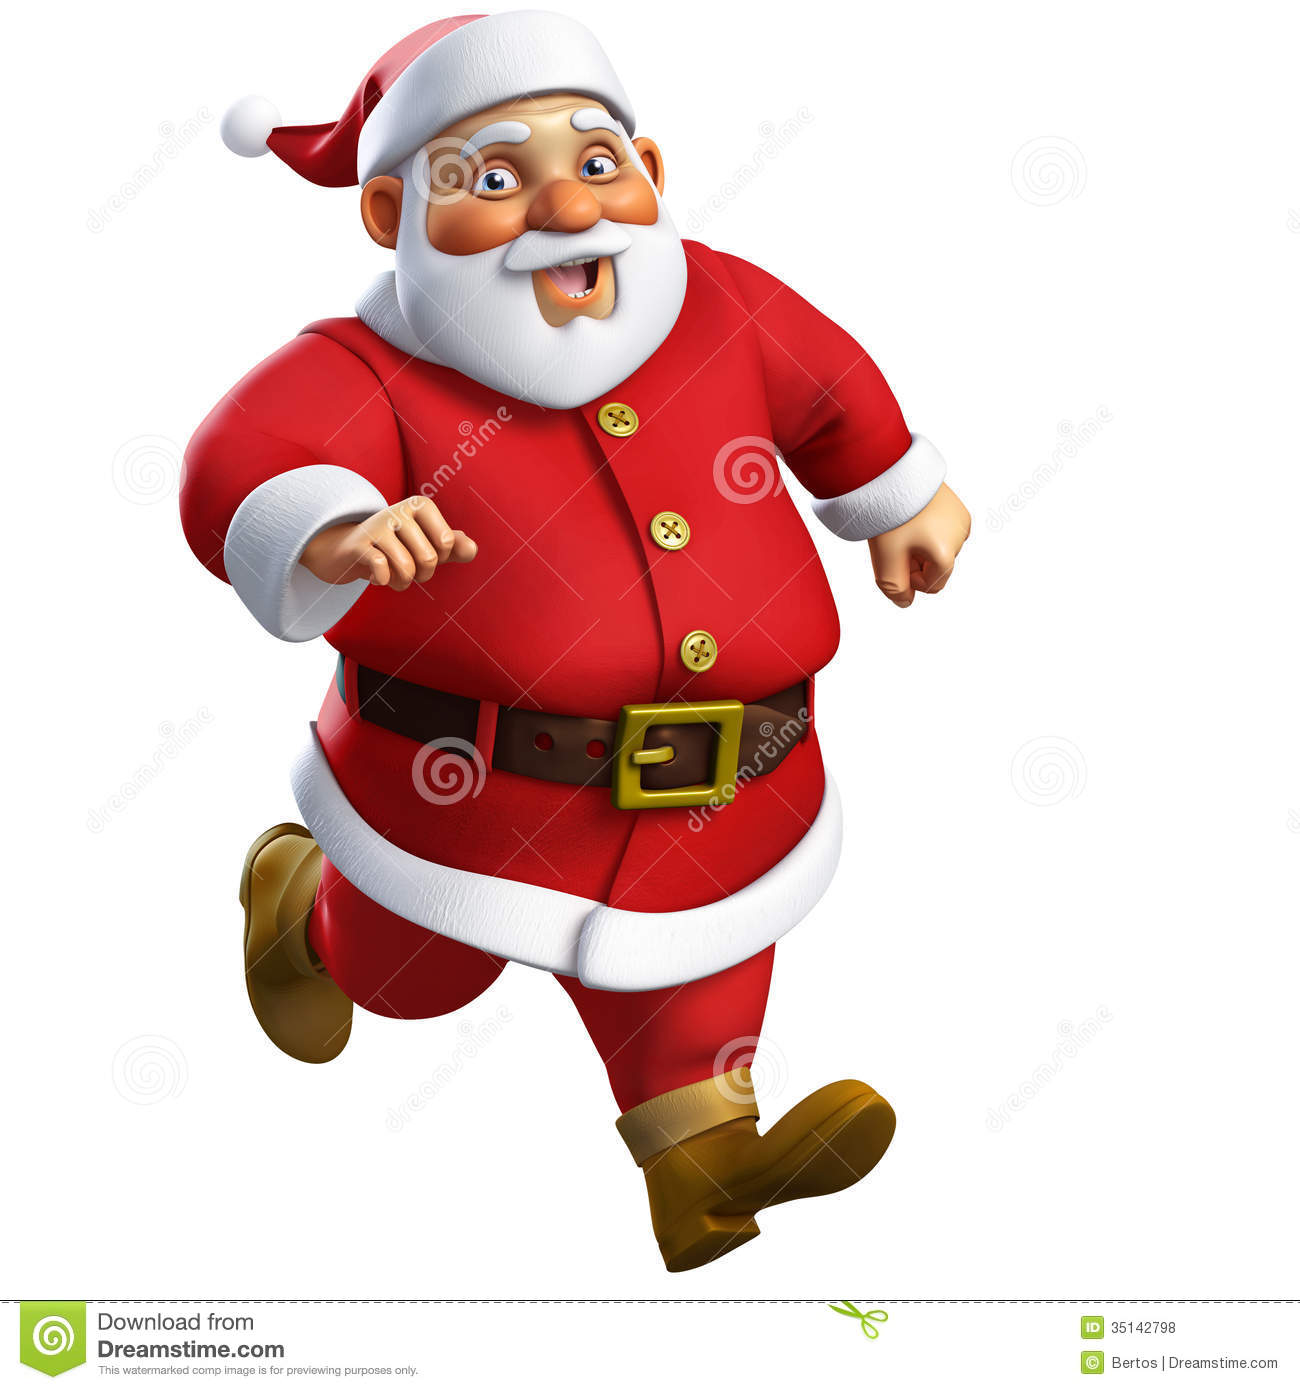 Image De Noel 3d.3d Cartoon Santa Stock Illustration Illustration Of Funny